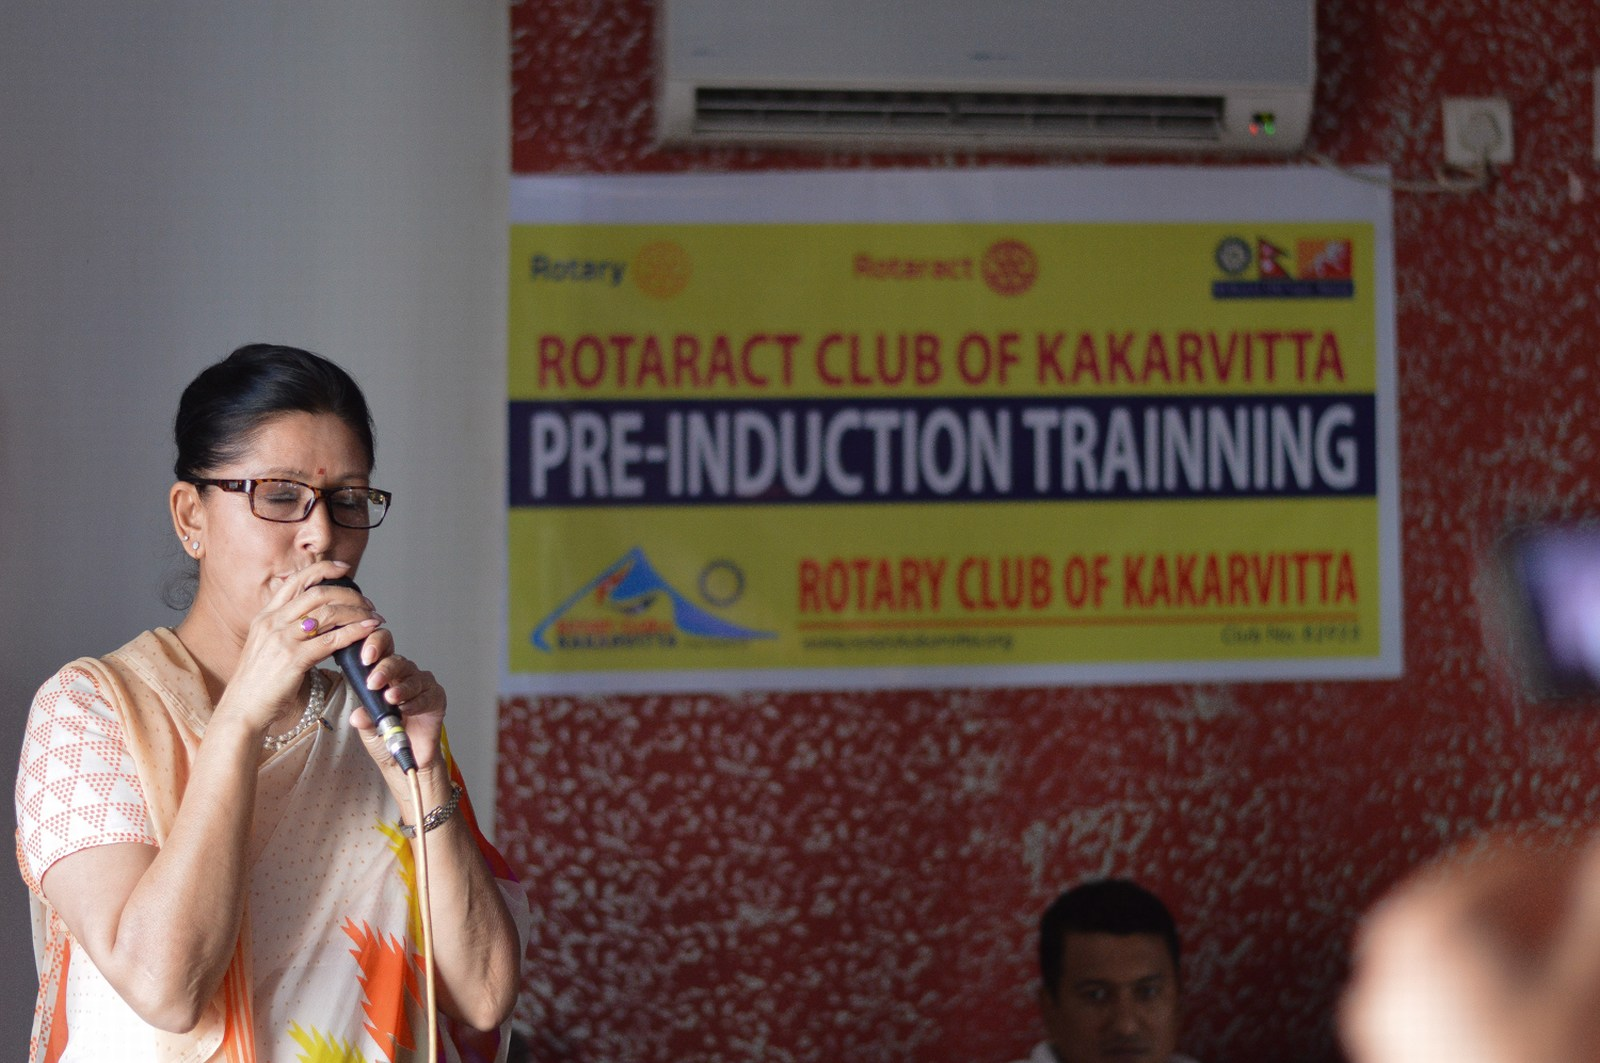 Pre-Induction-Training-of-Rotaract-Club-of-Kakarvitta-Rotary-Club-of-Kakarvitta-6